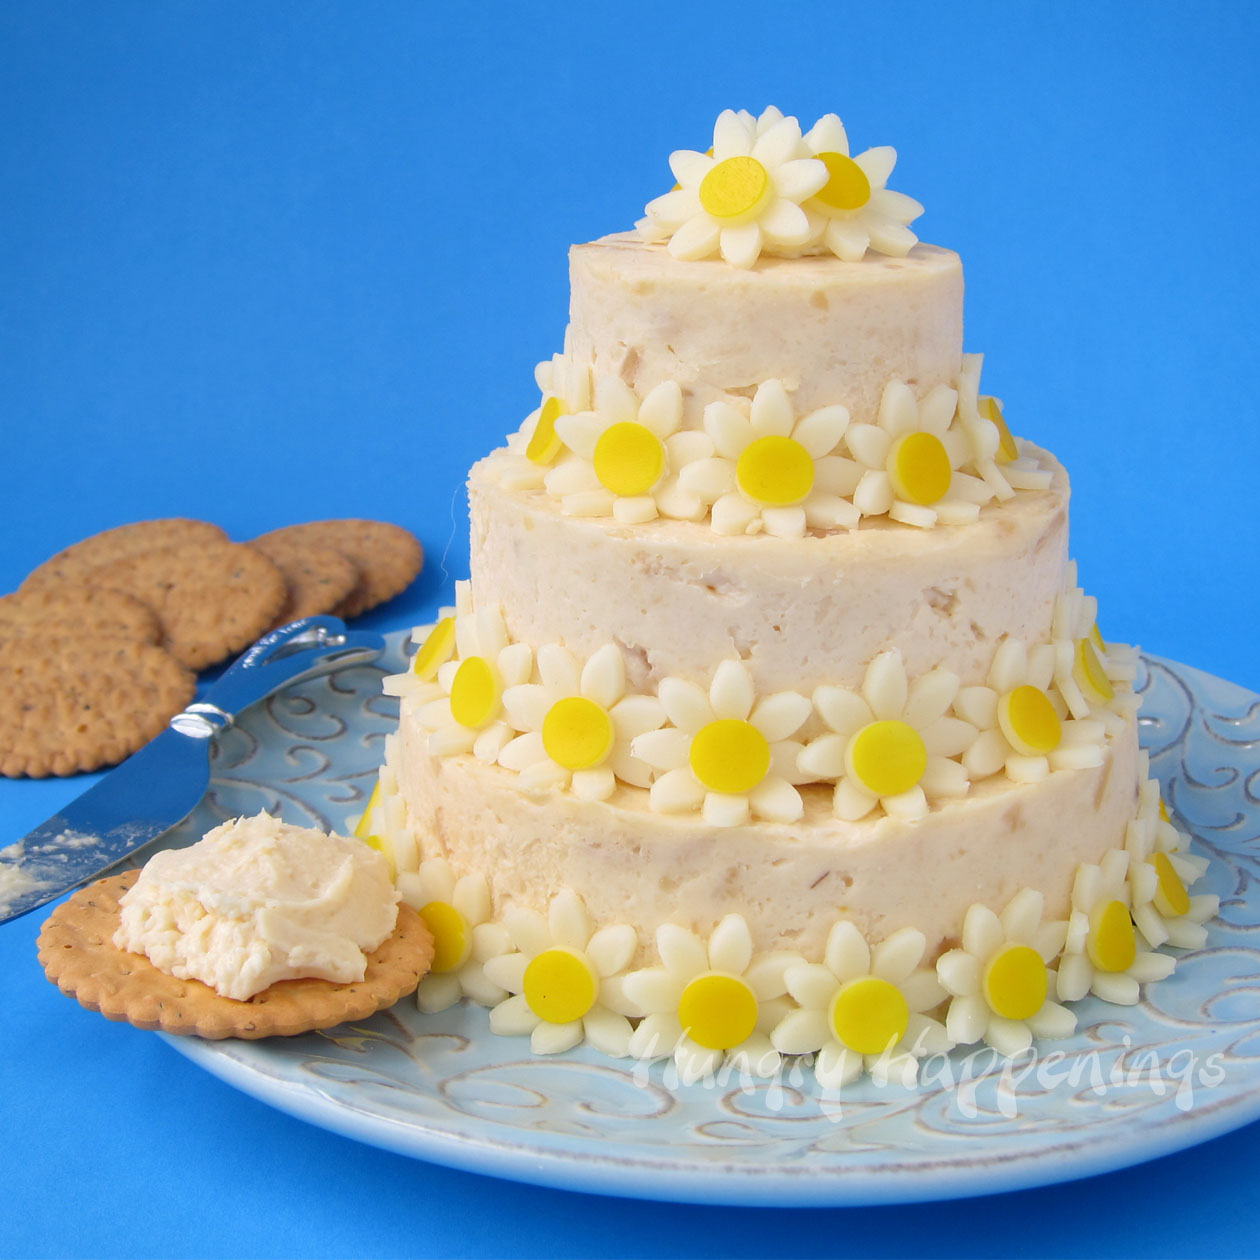 Wedding Cake Cheese Ball - Special Occasion Appetizer